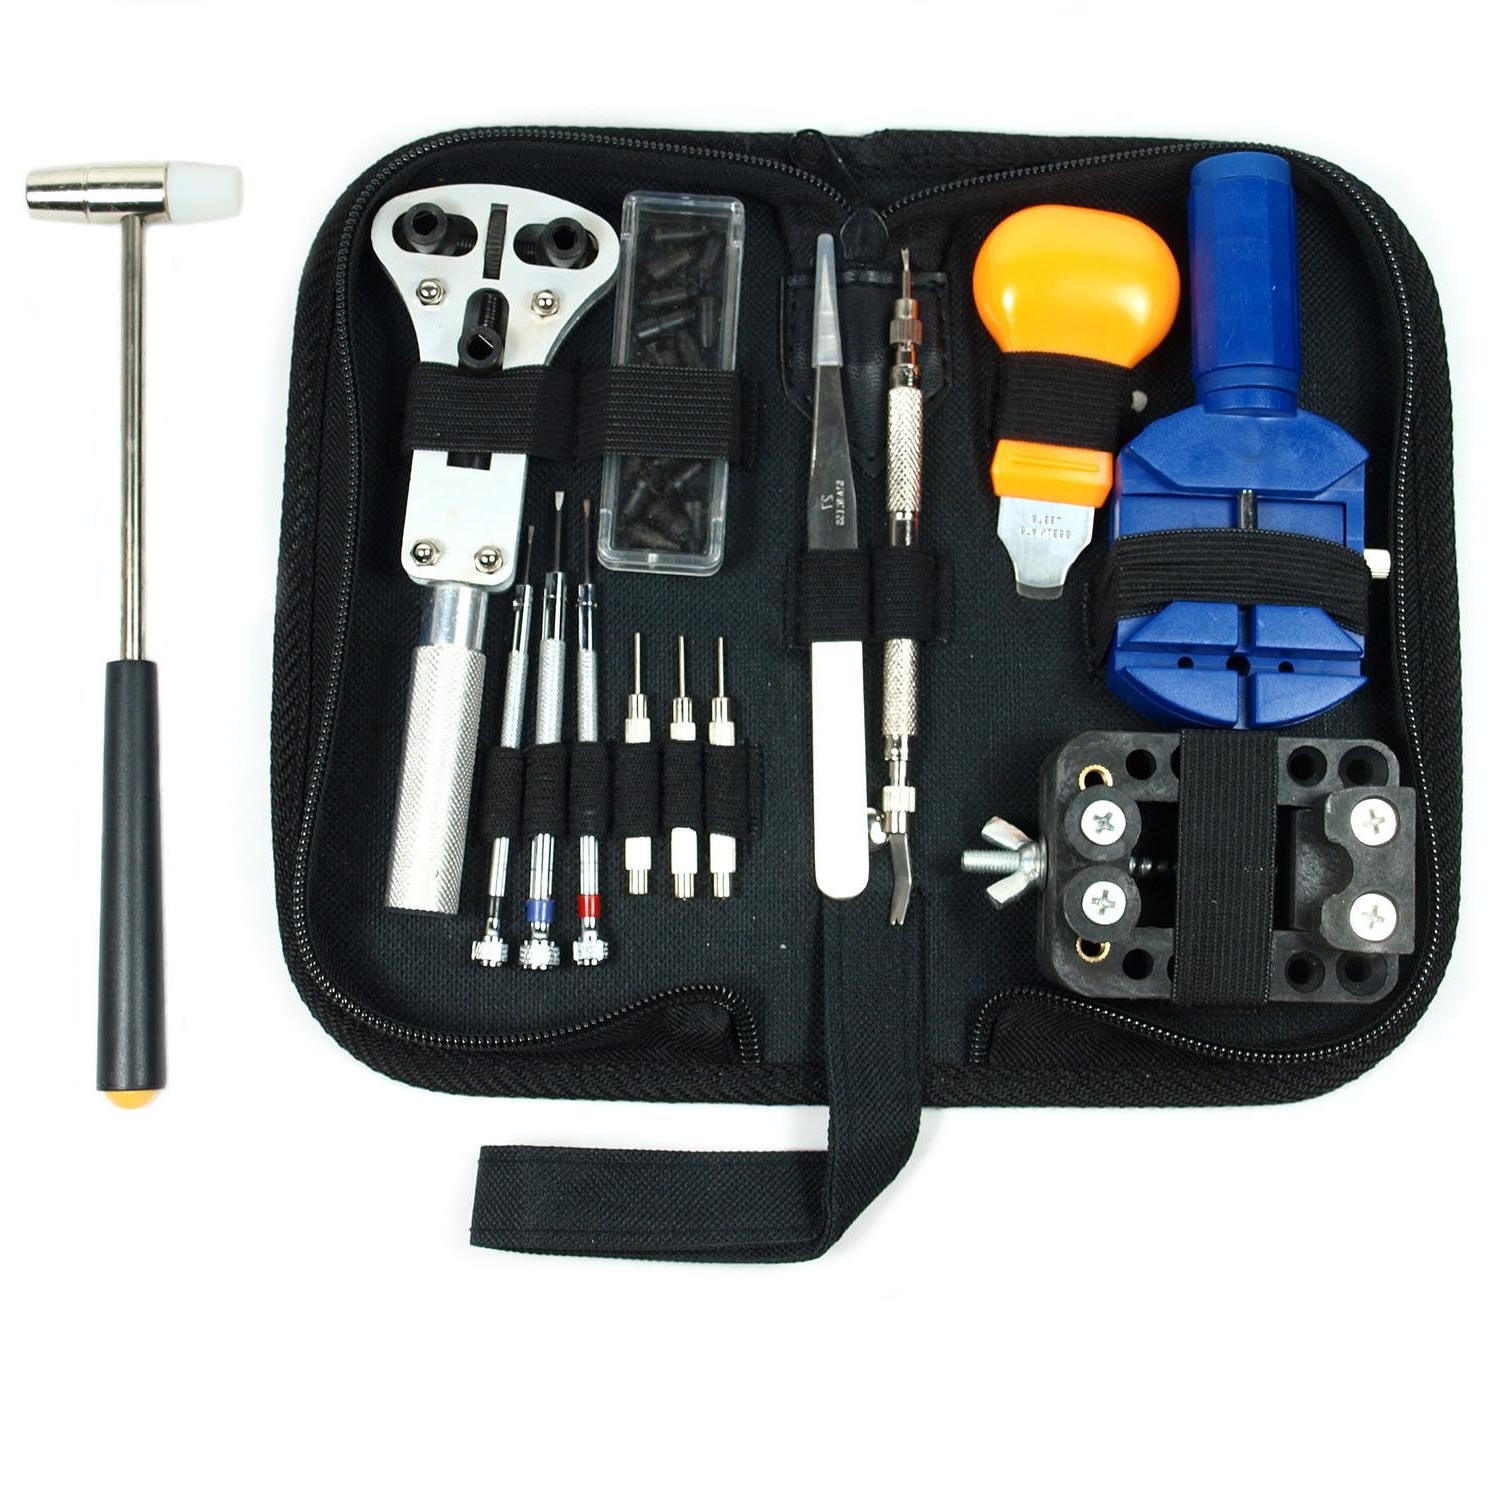 Watch Repair Tool Kit - Remover, Spring Case Press